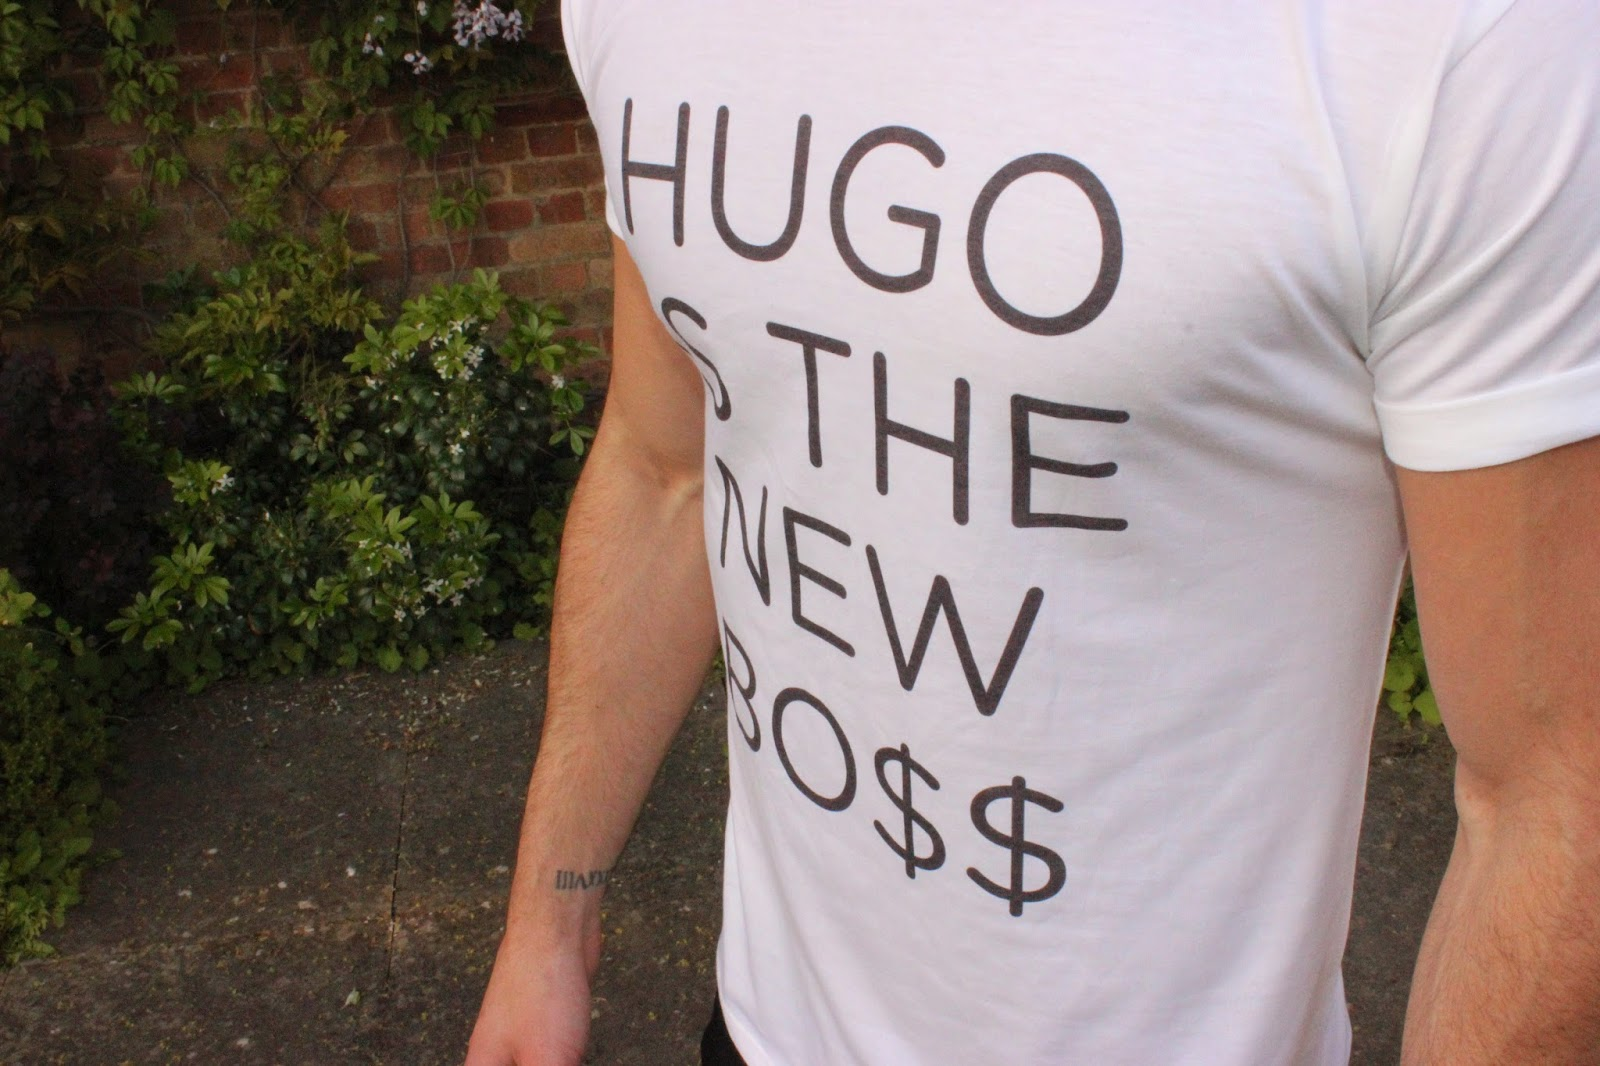 Hugo Is The New Boss Tshirt